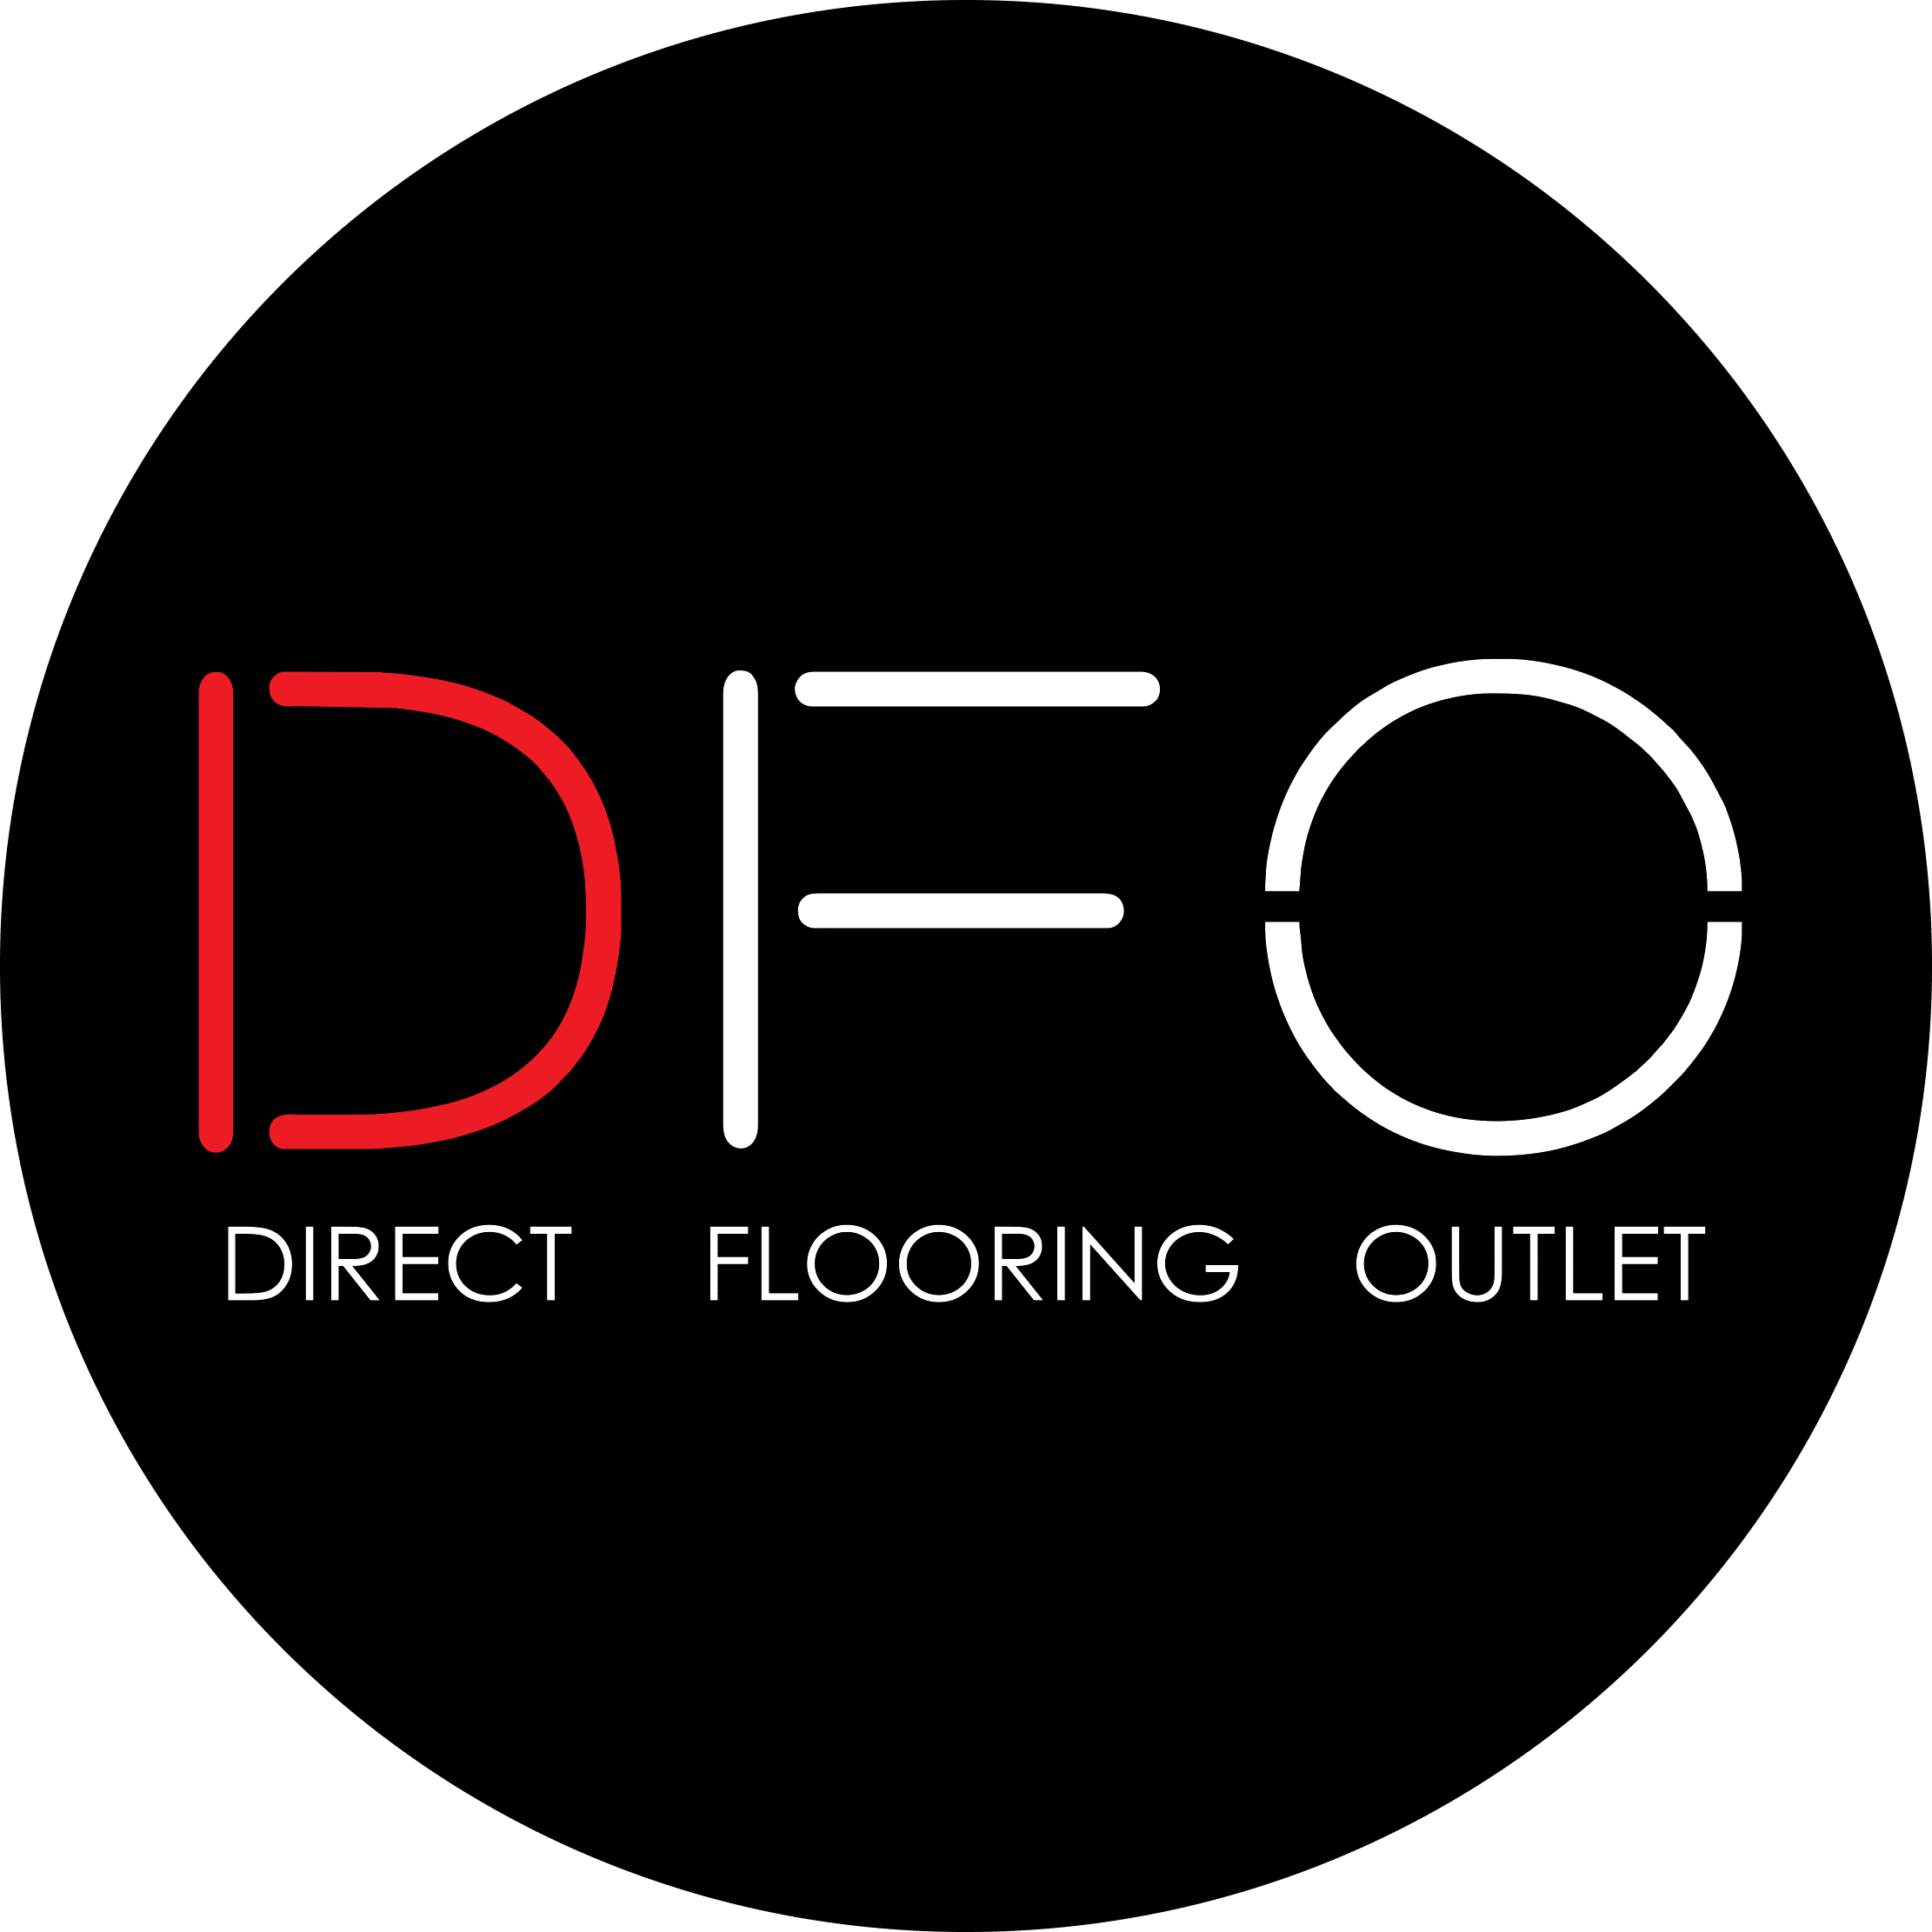 Direct Flooring Outlet